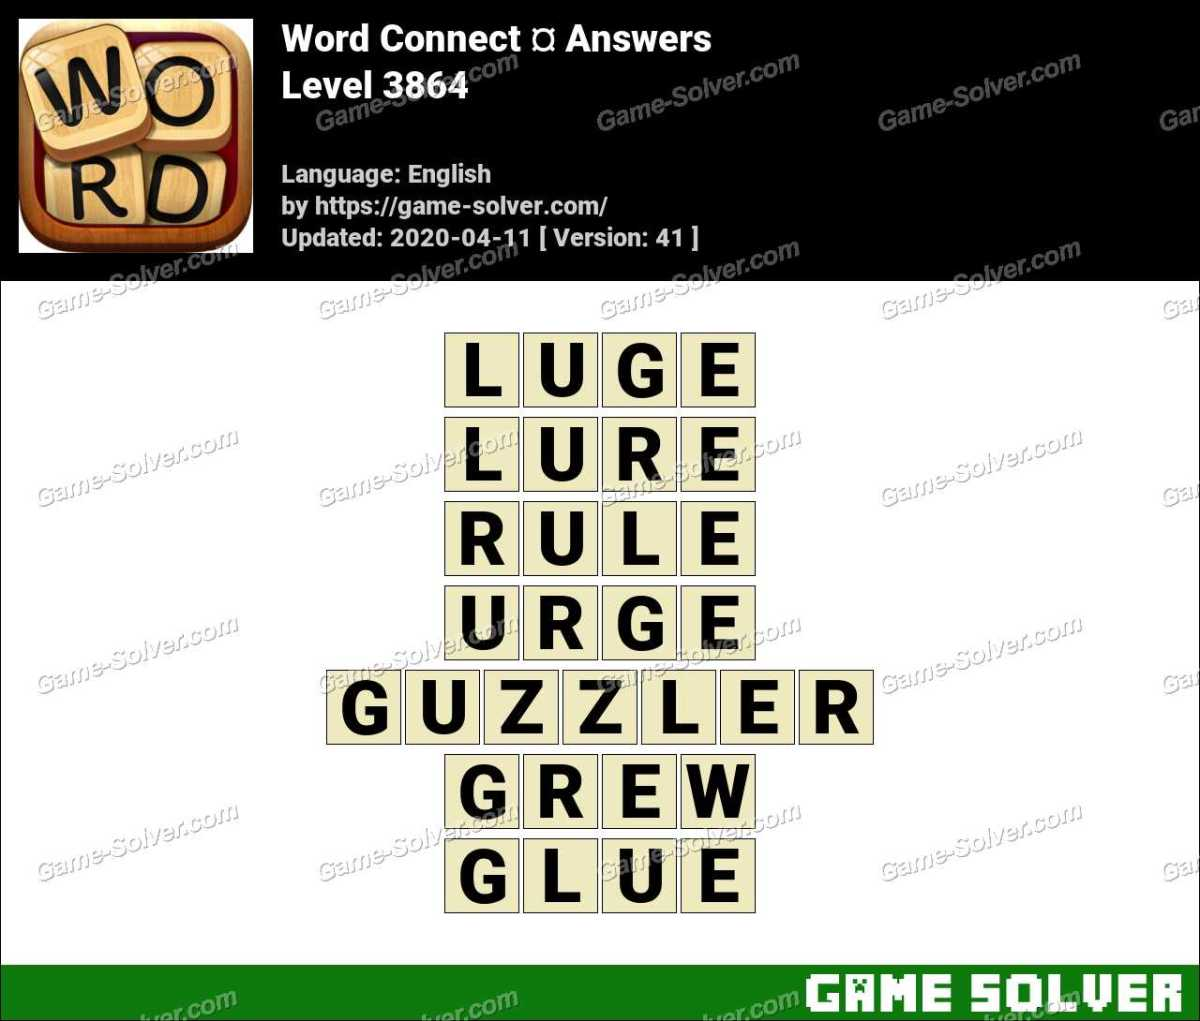 Word Connect Level 3864 Answers